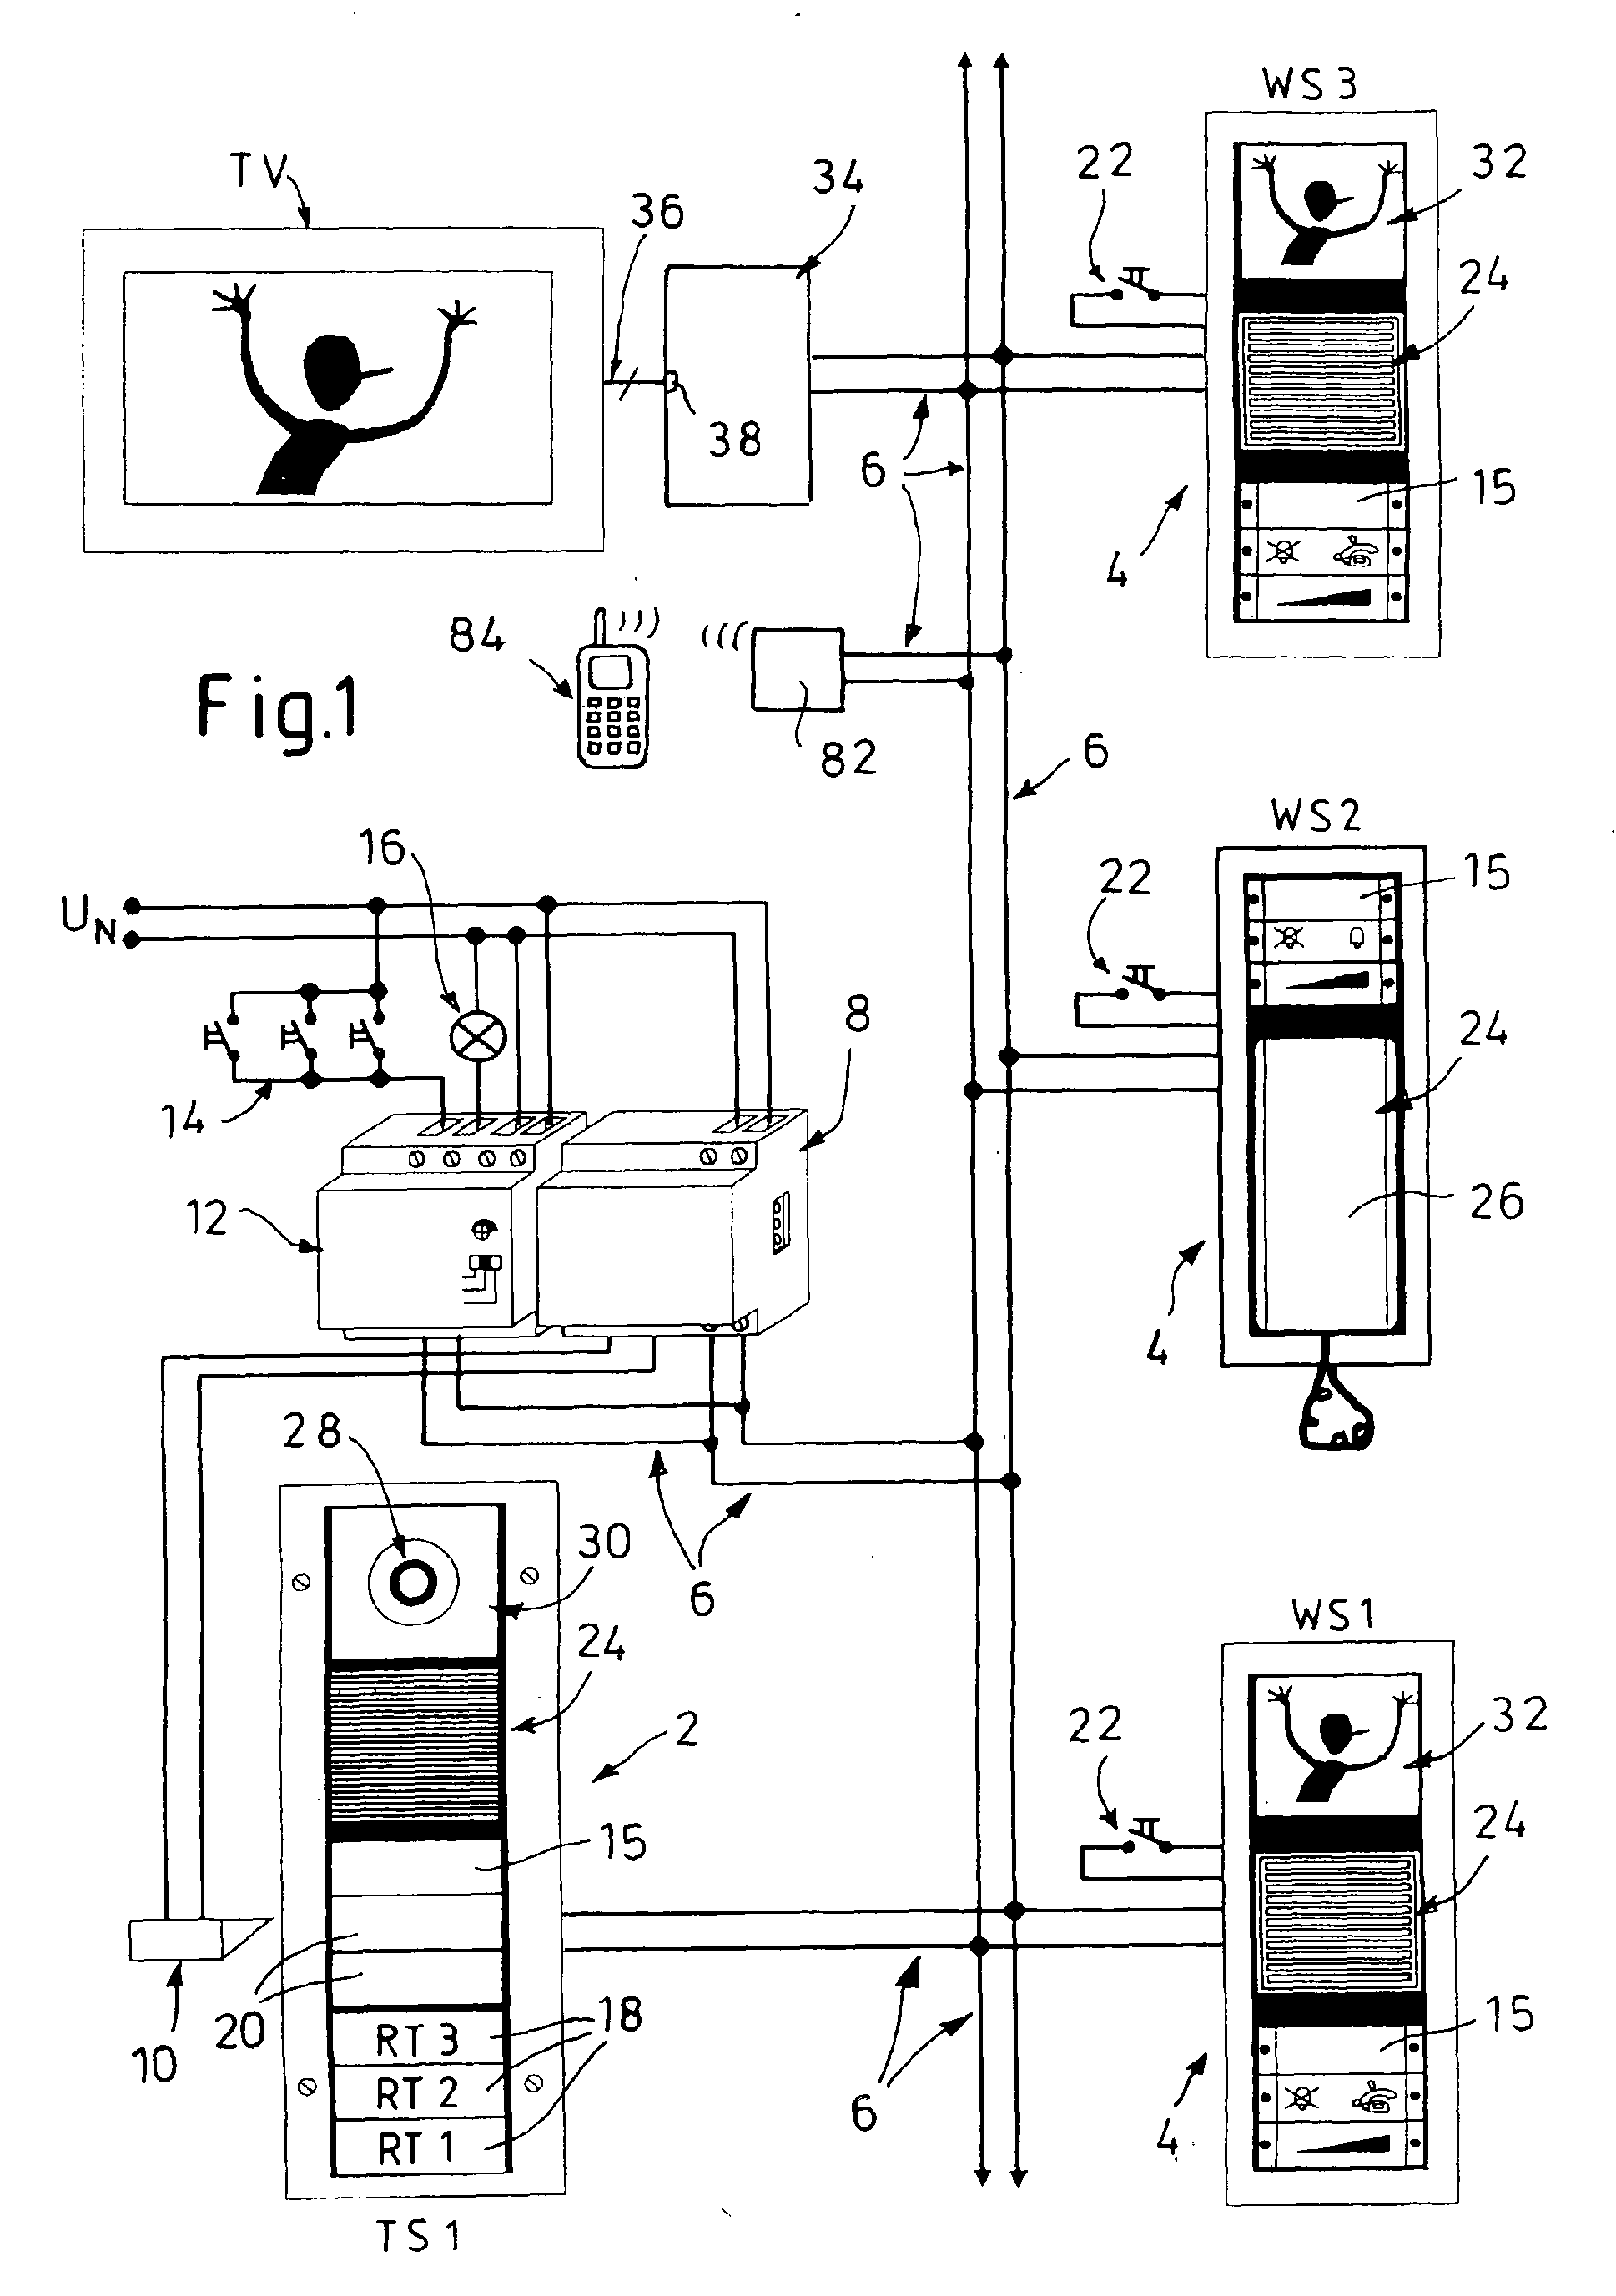 patent ep1850596a1 - domestic intercom system with video transmission